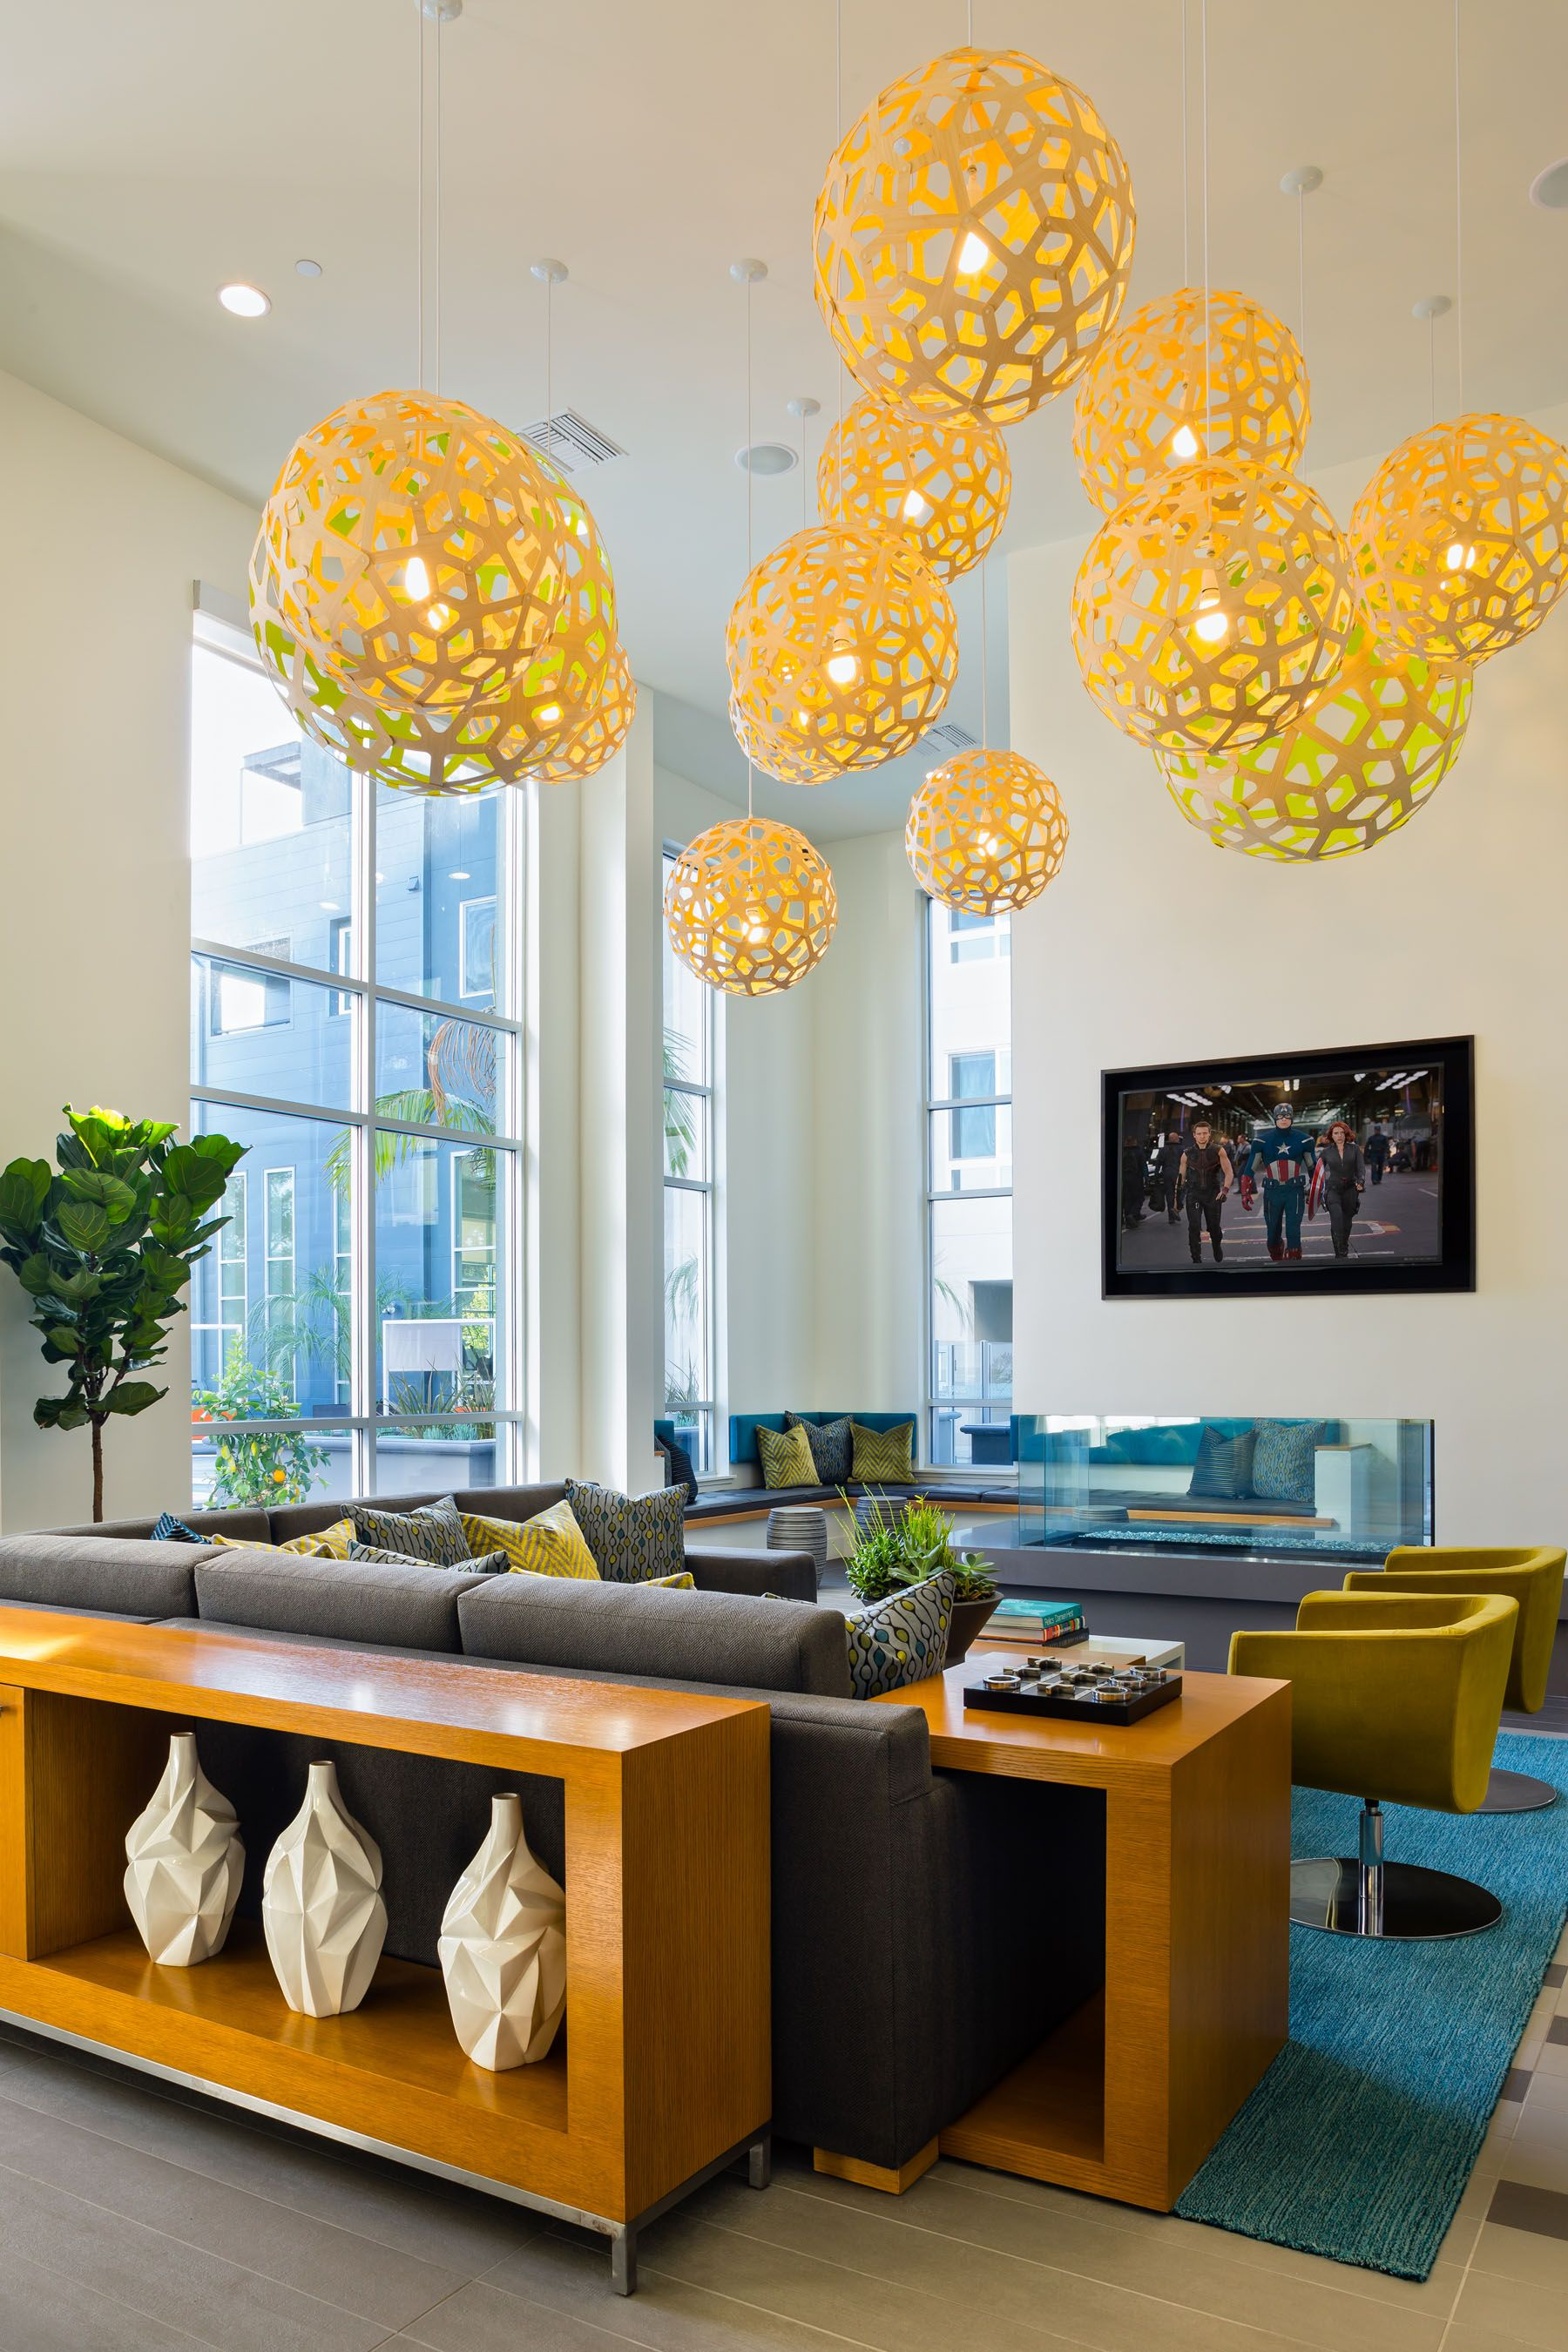 David trubridge coral pendant lights at the aire apartments in san jose click image for where to buy